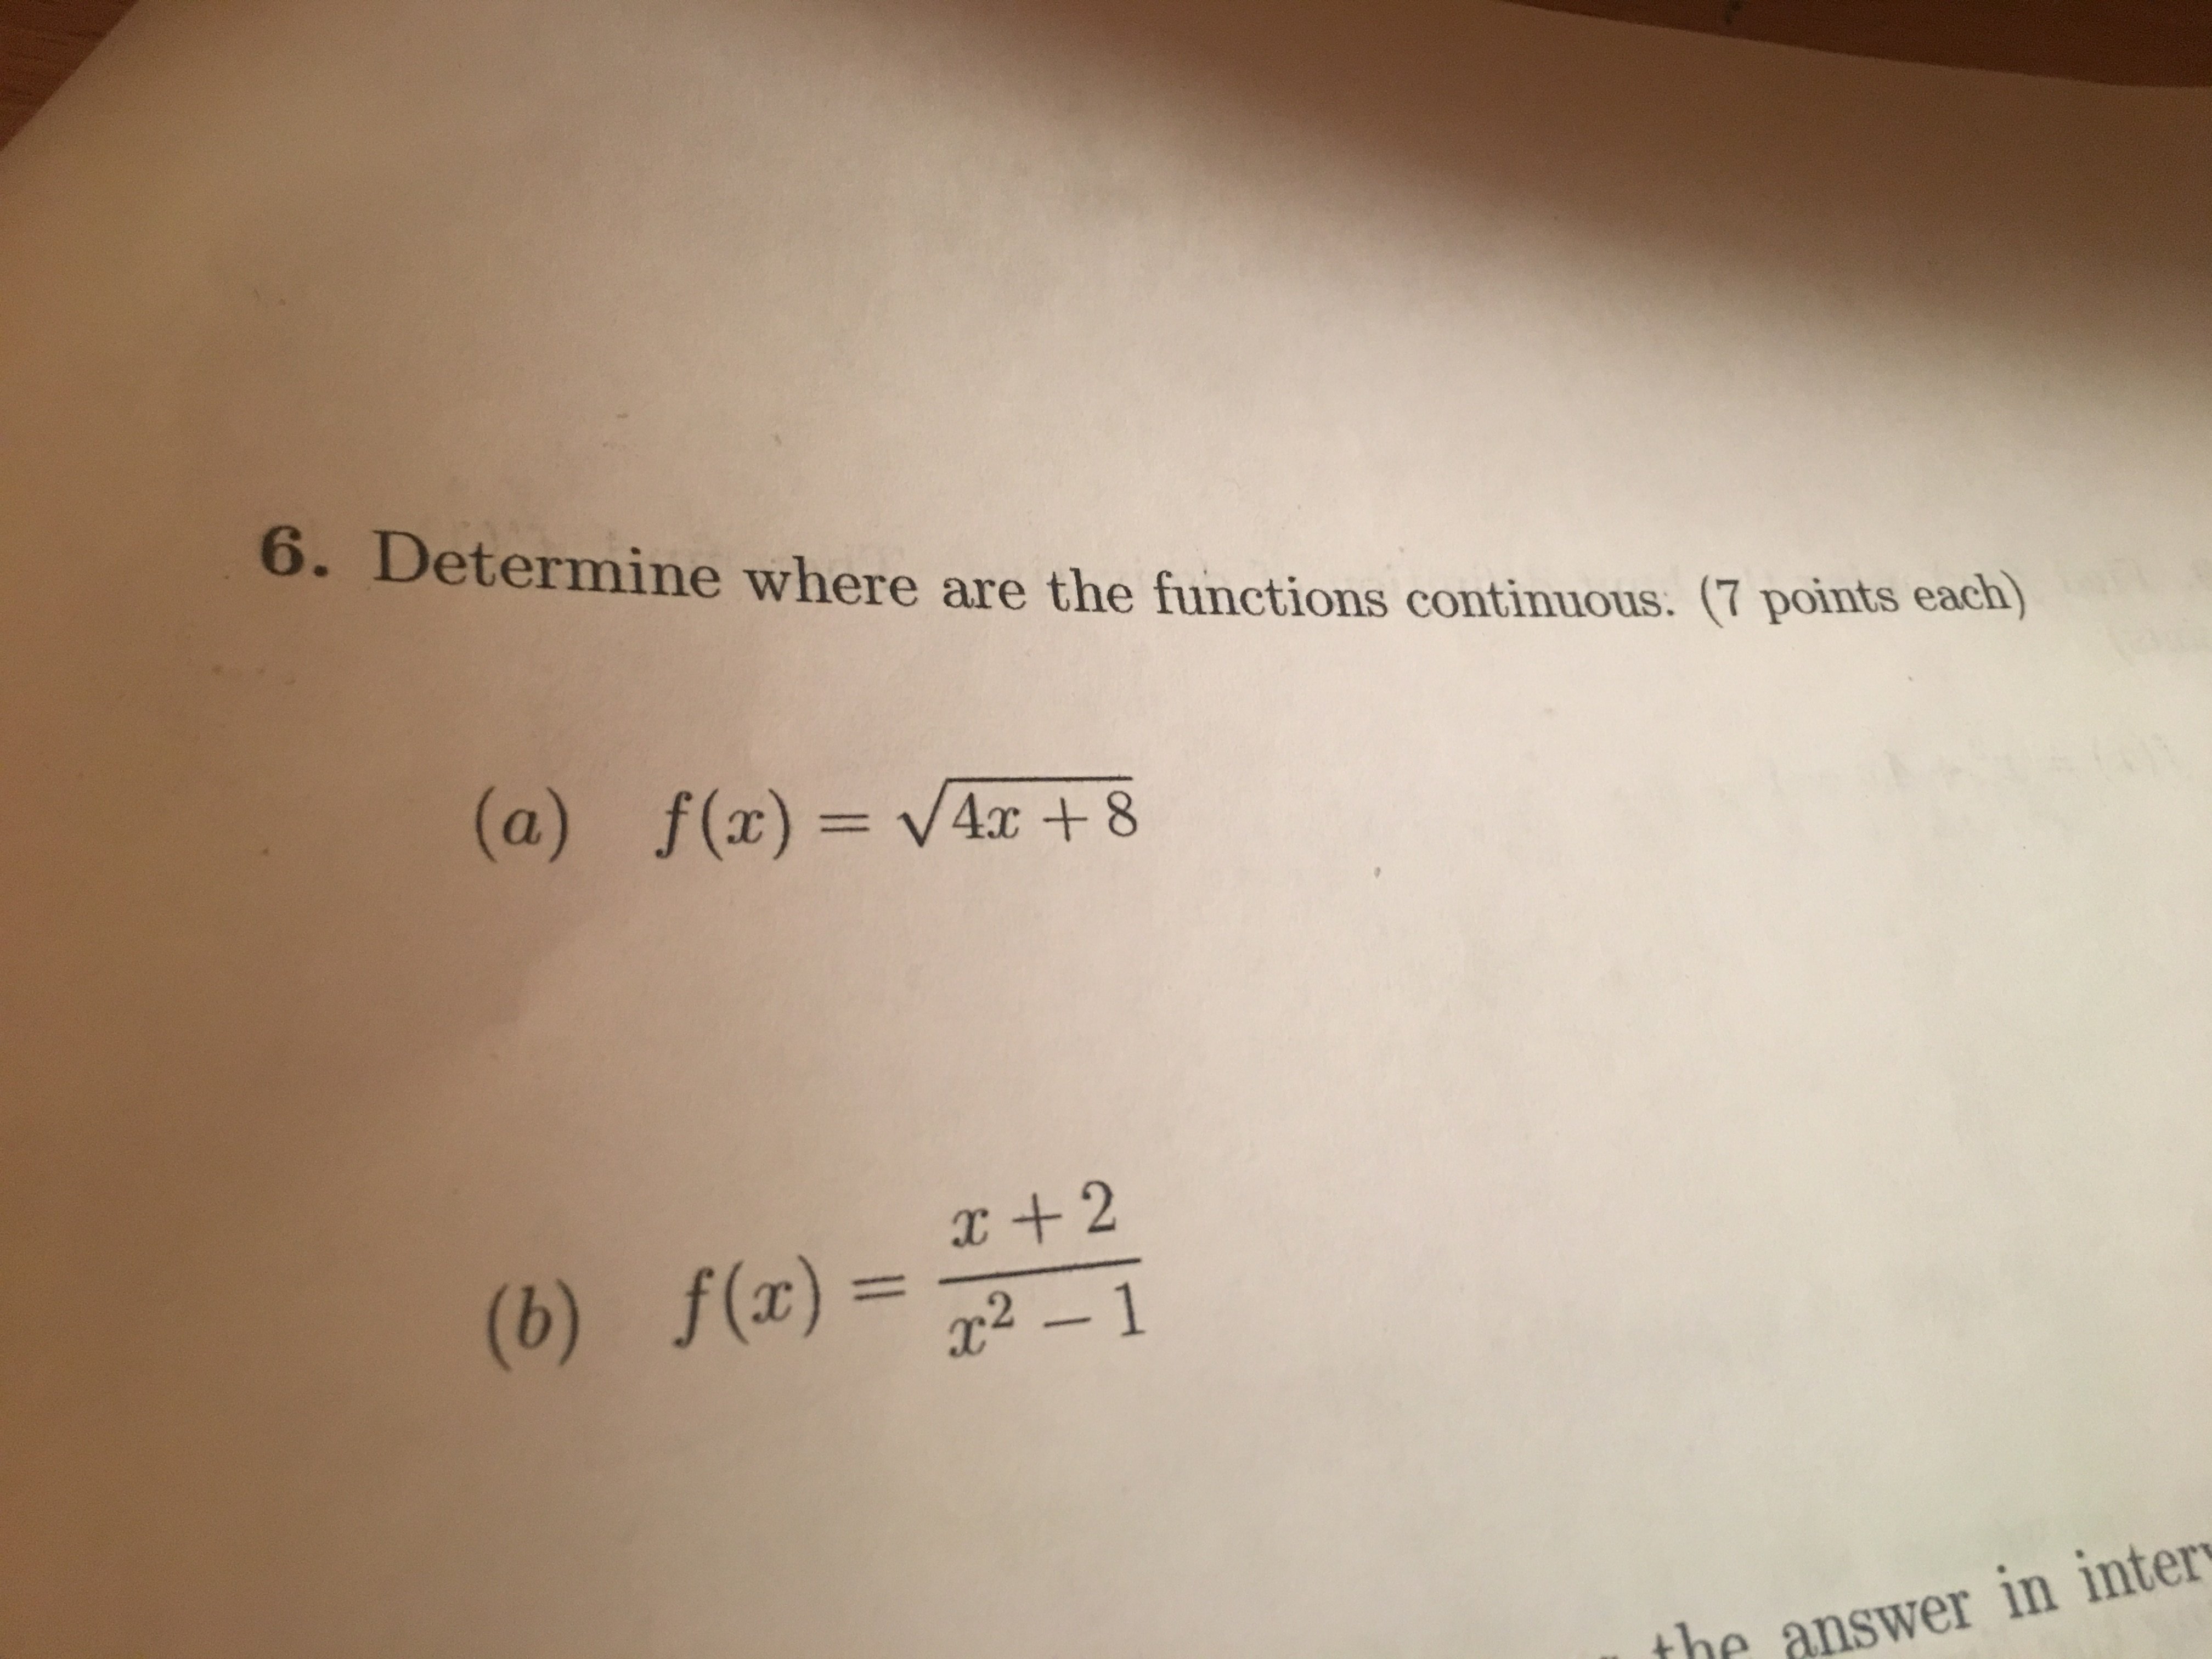 O. Determine where are the functions continuous. (7 points each) (a) f(x) VAz+8 (b) f(x) = r +2 2-1 the answer in inter